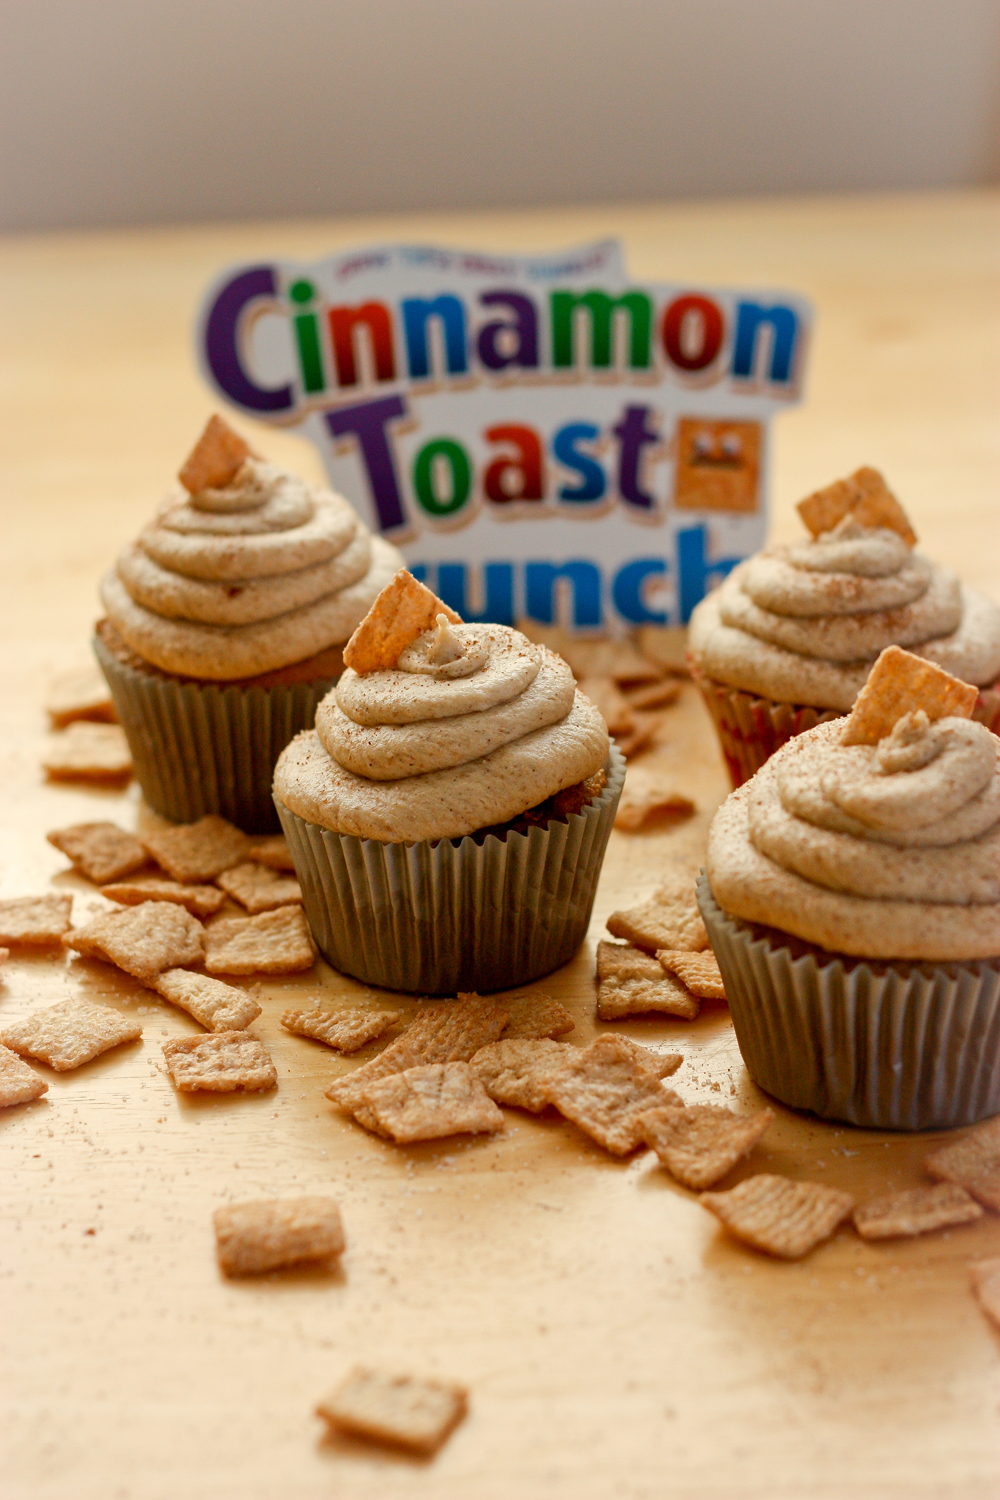 Cinnamon Toast Crunch Cupcakes | BS' in the Kitchen